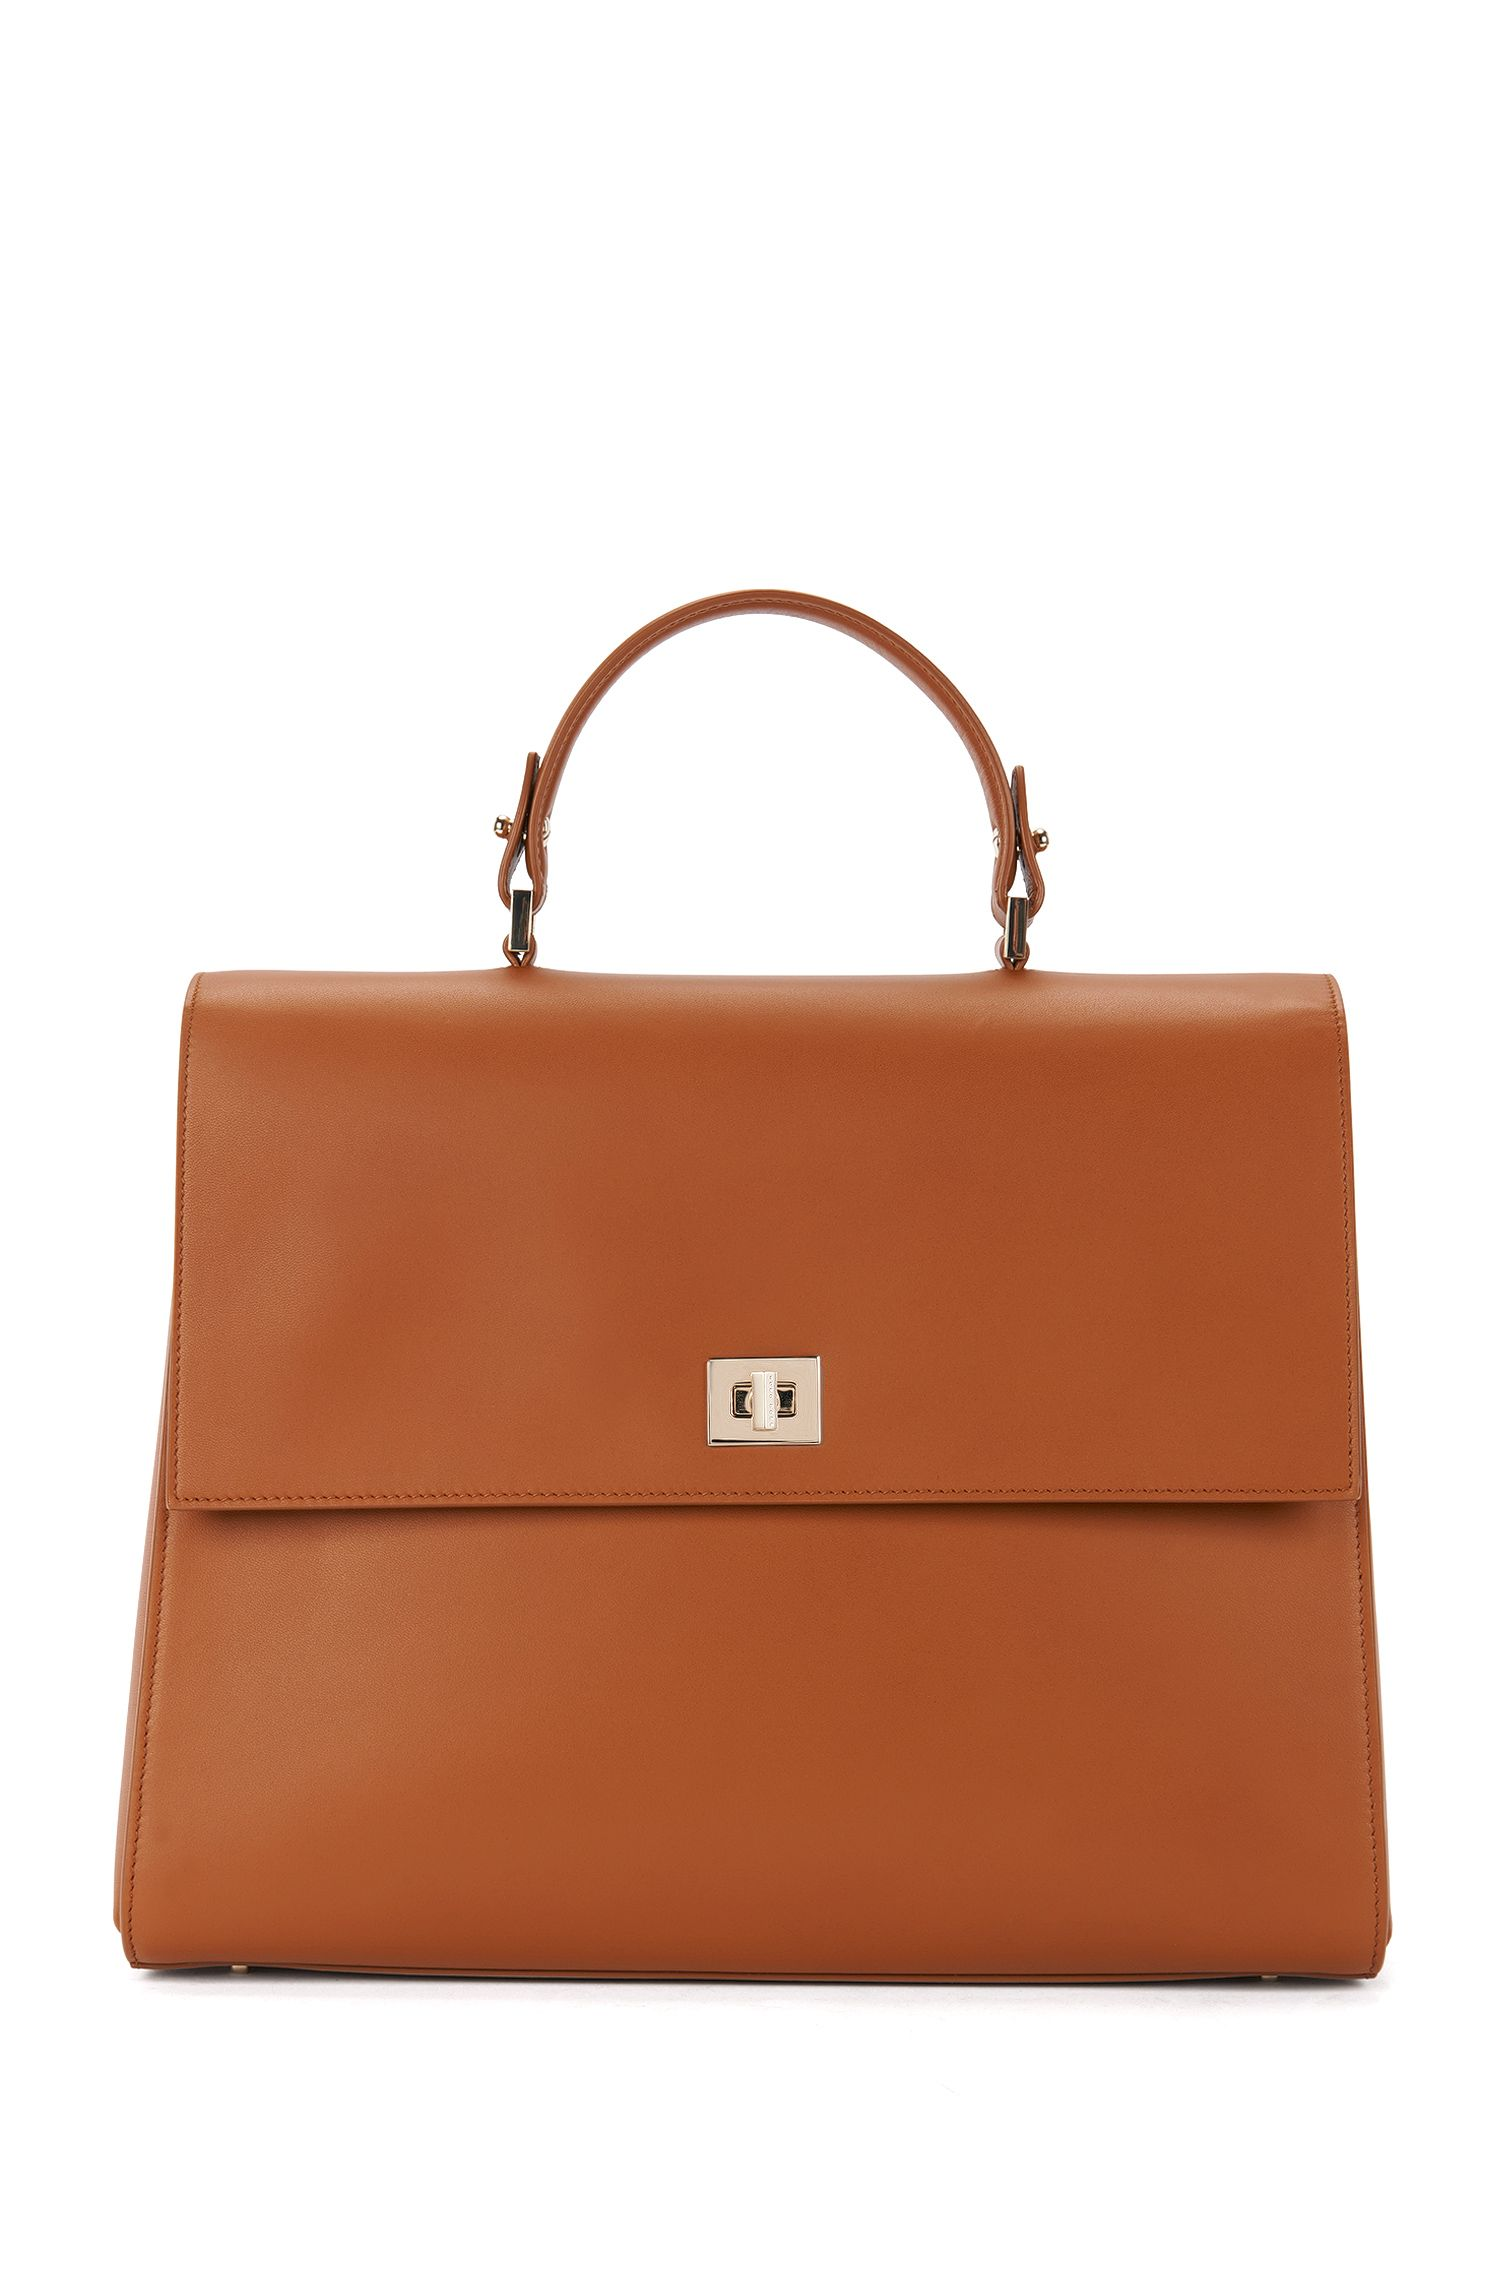 BOSS Bespoke handbag in smooth leather